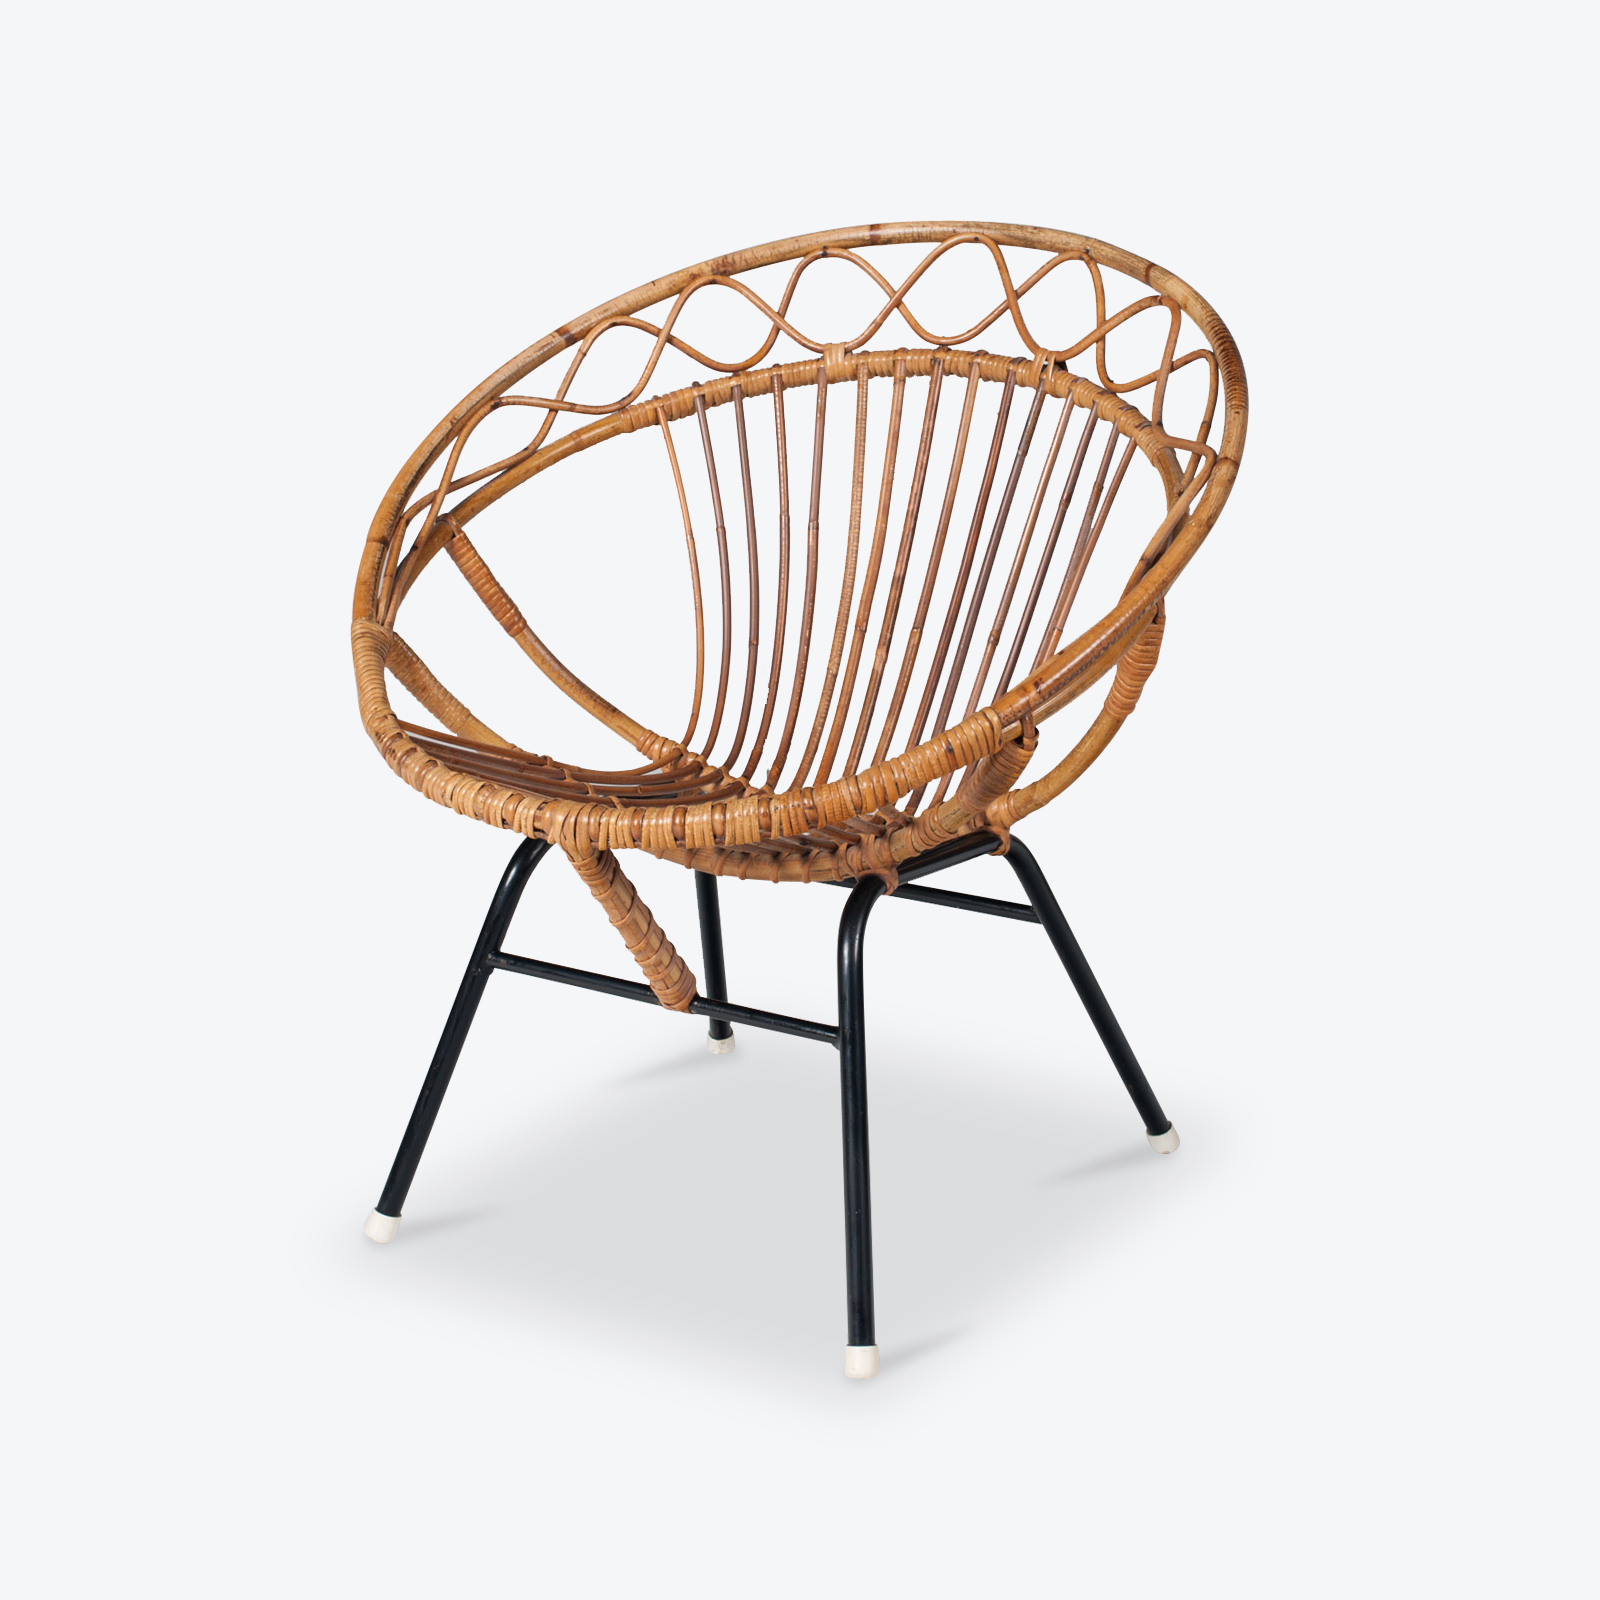 Rattan Lounge Chair By Rohe Noordwolde 1960s Netherlands 01